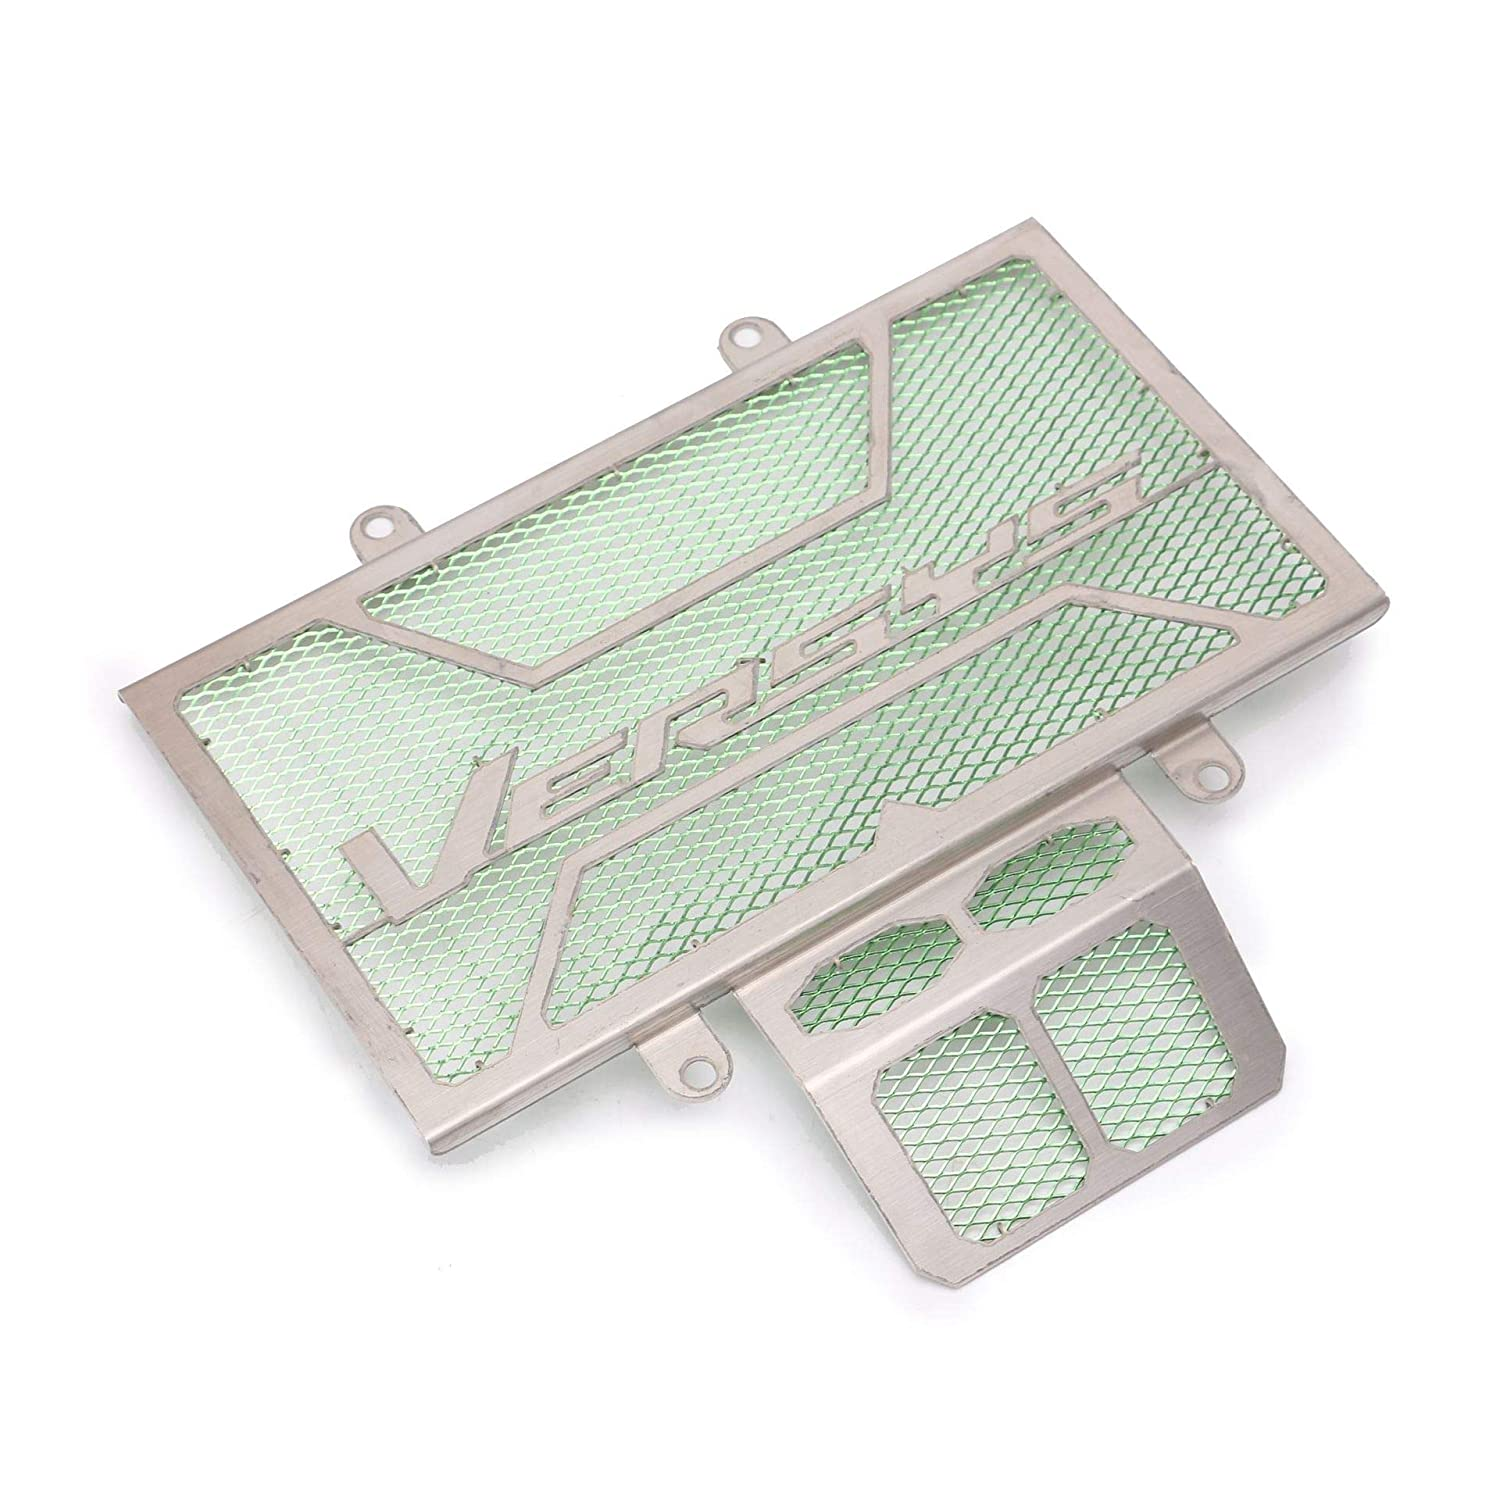 Easygo Motorcycle CNC Stainless steel Radiator Grill Green Protection suitable for Kawasaki VERSYS 250 2017-2018